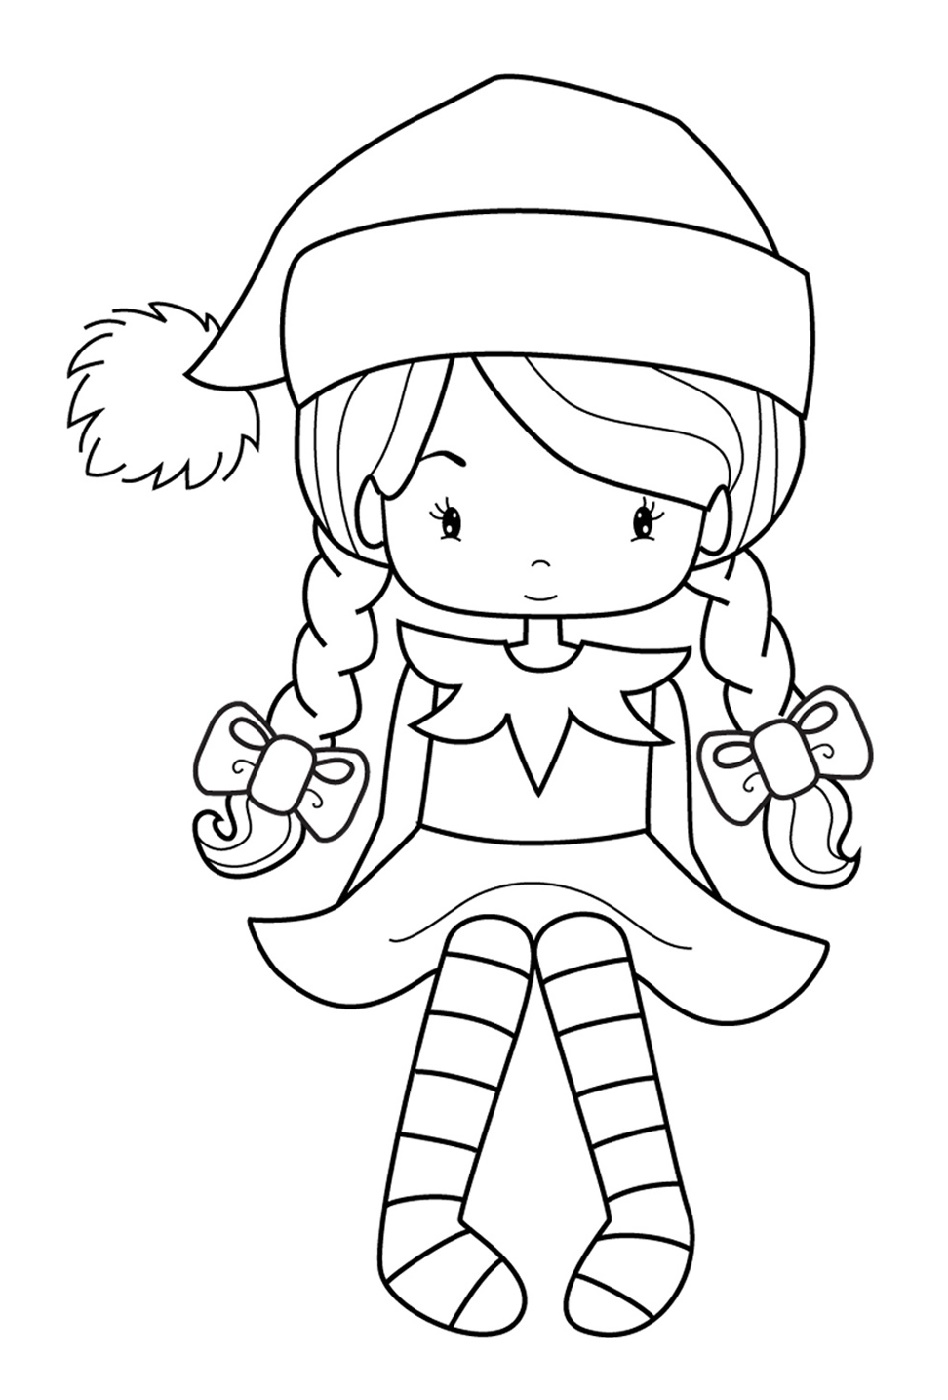 Elf on the shelf printable coloring pages girl